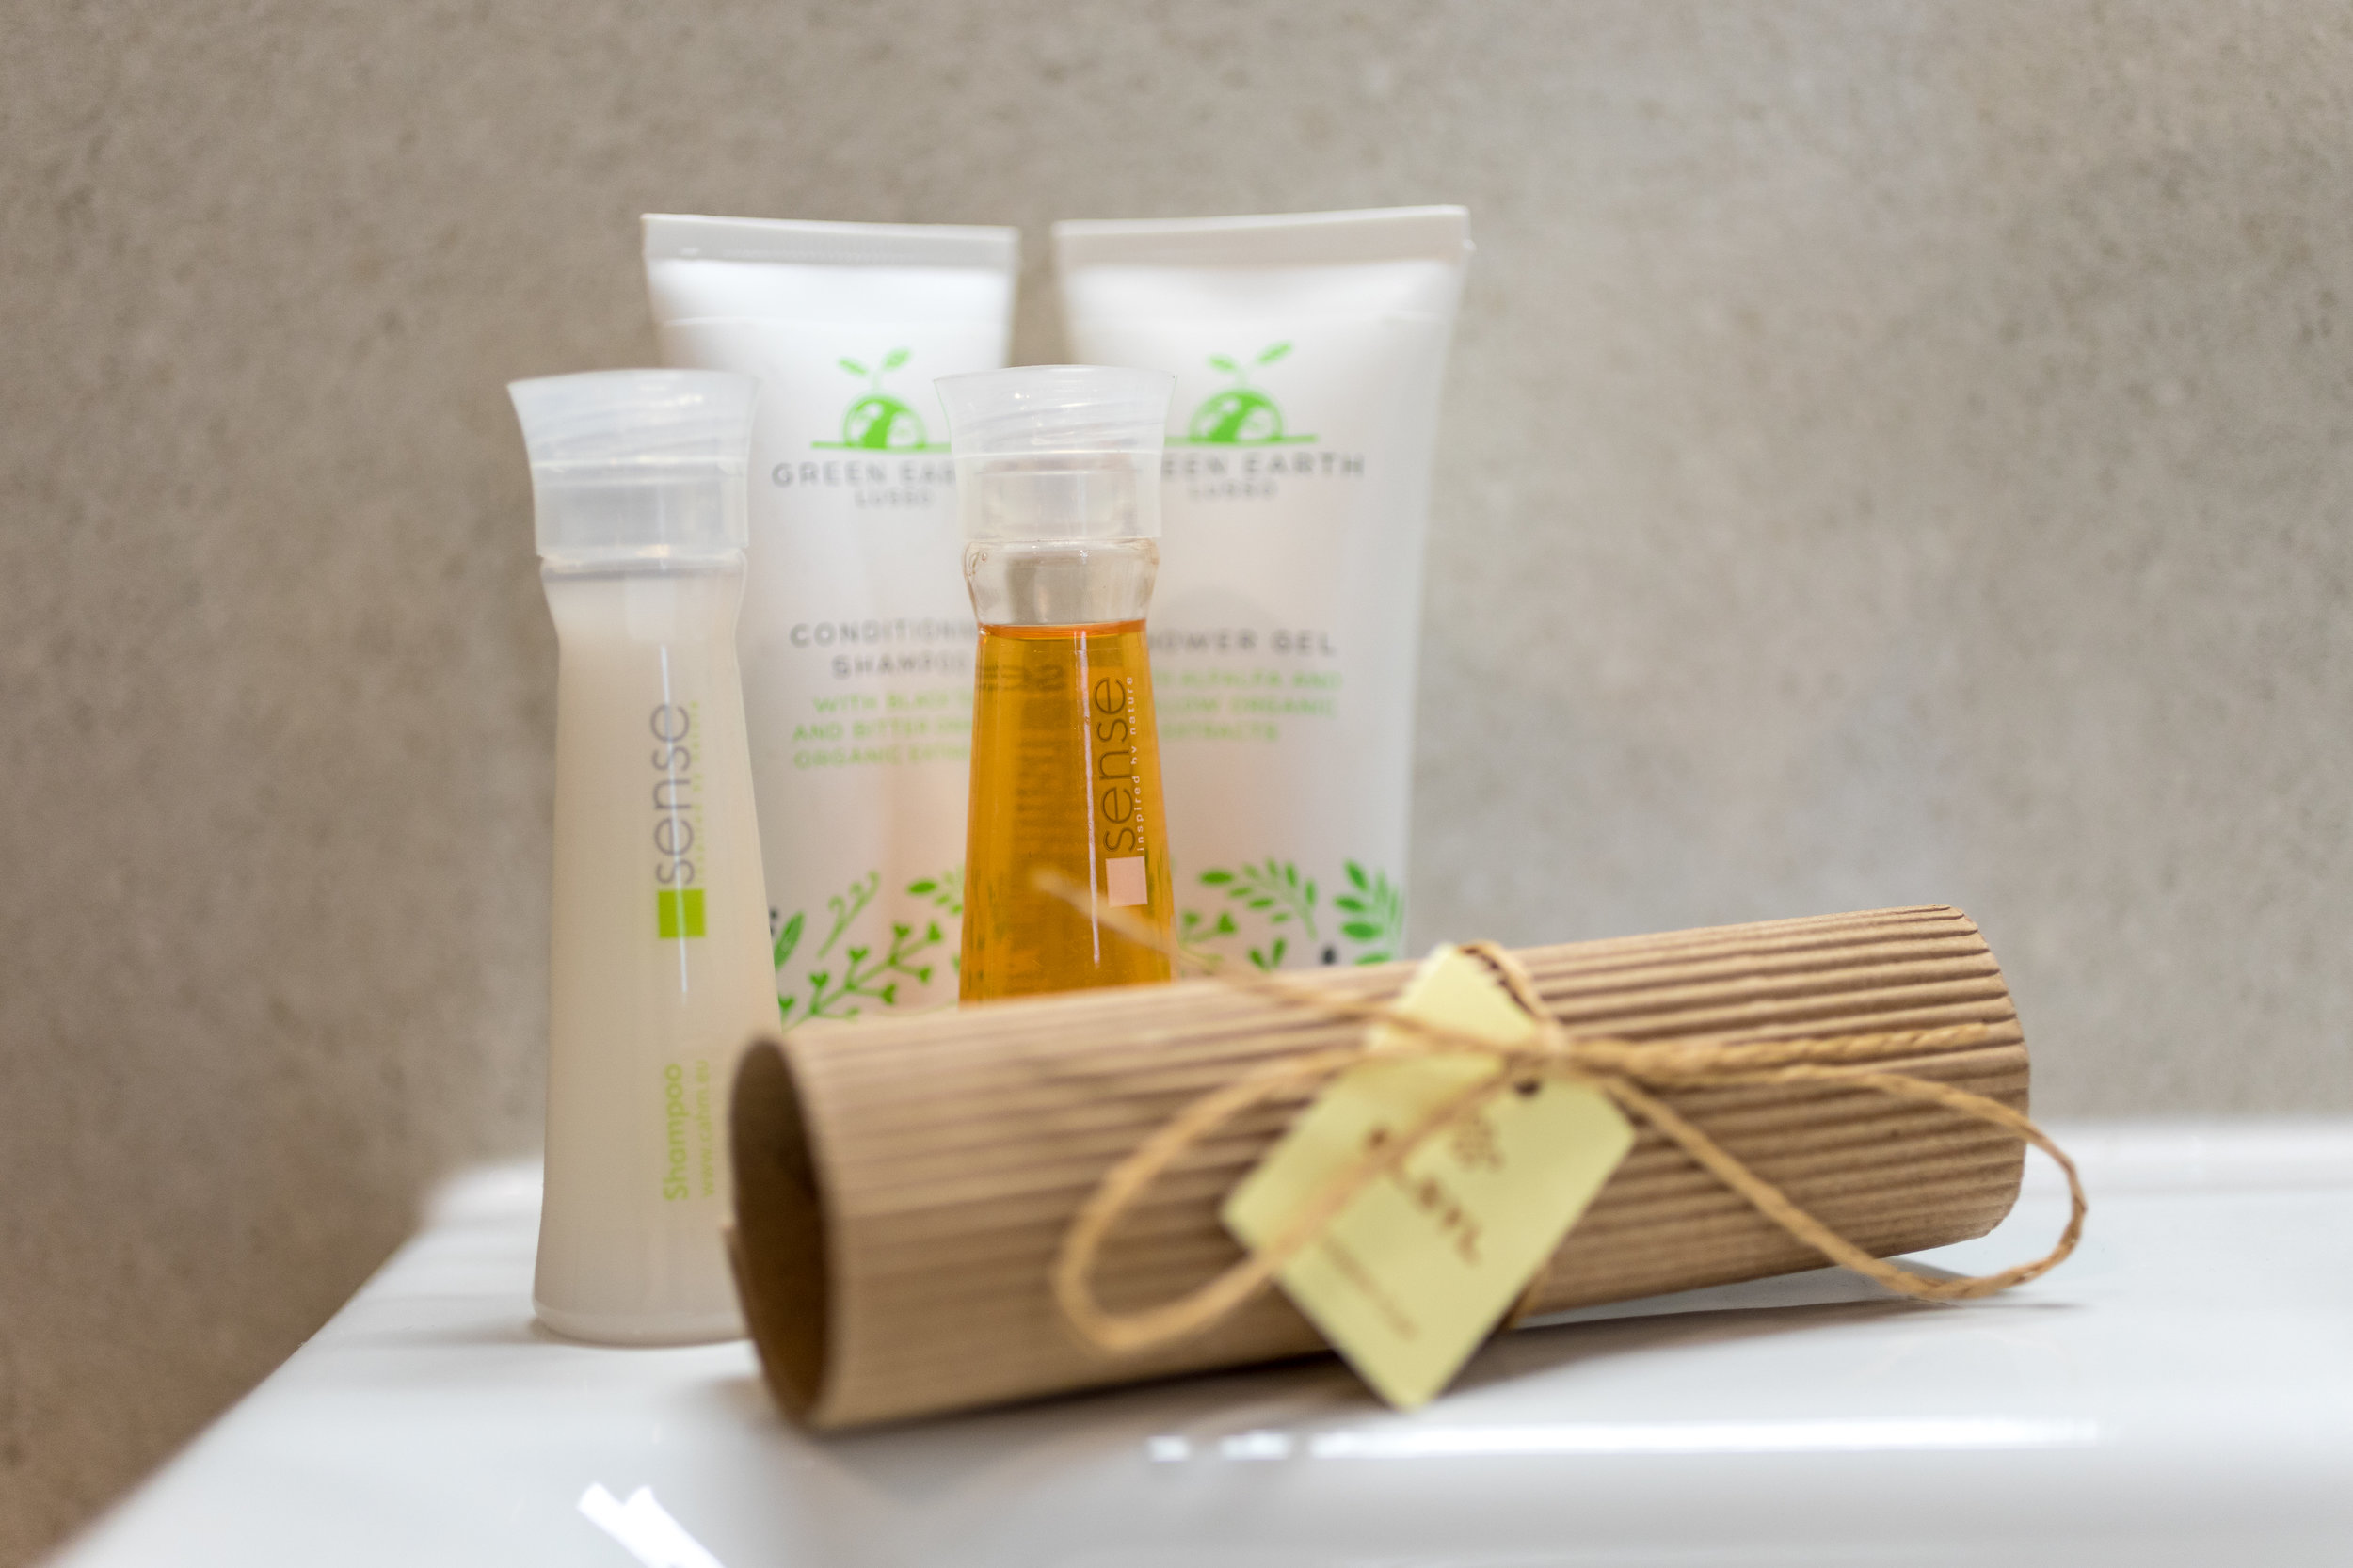 Locally sourced toiletries